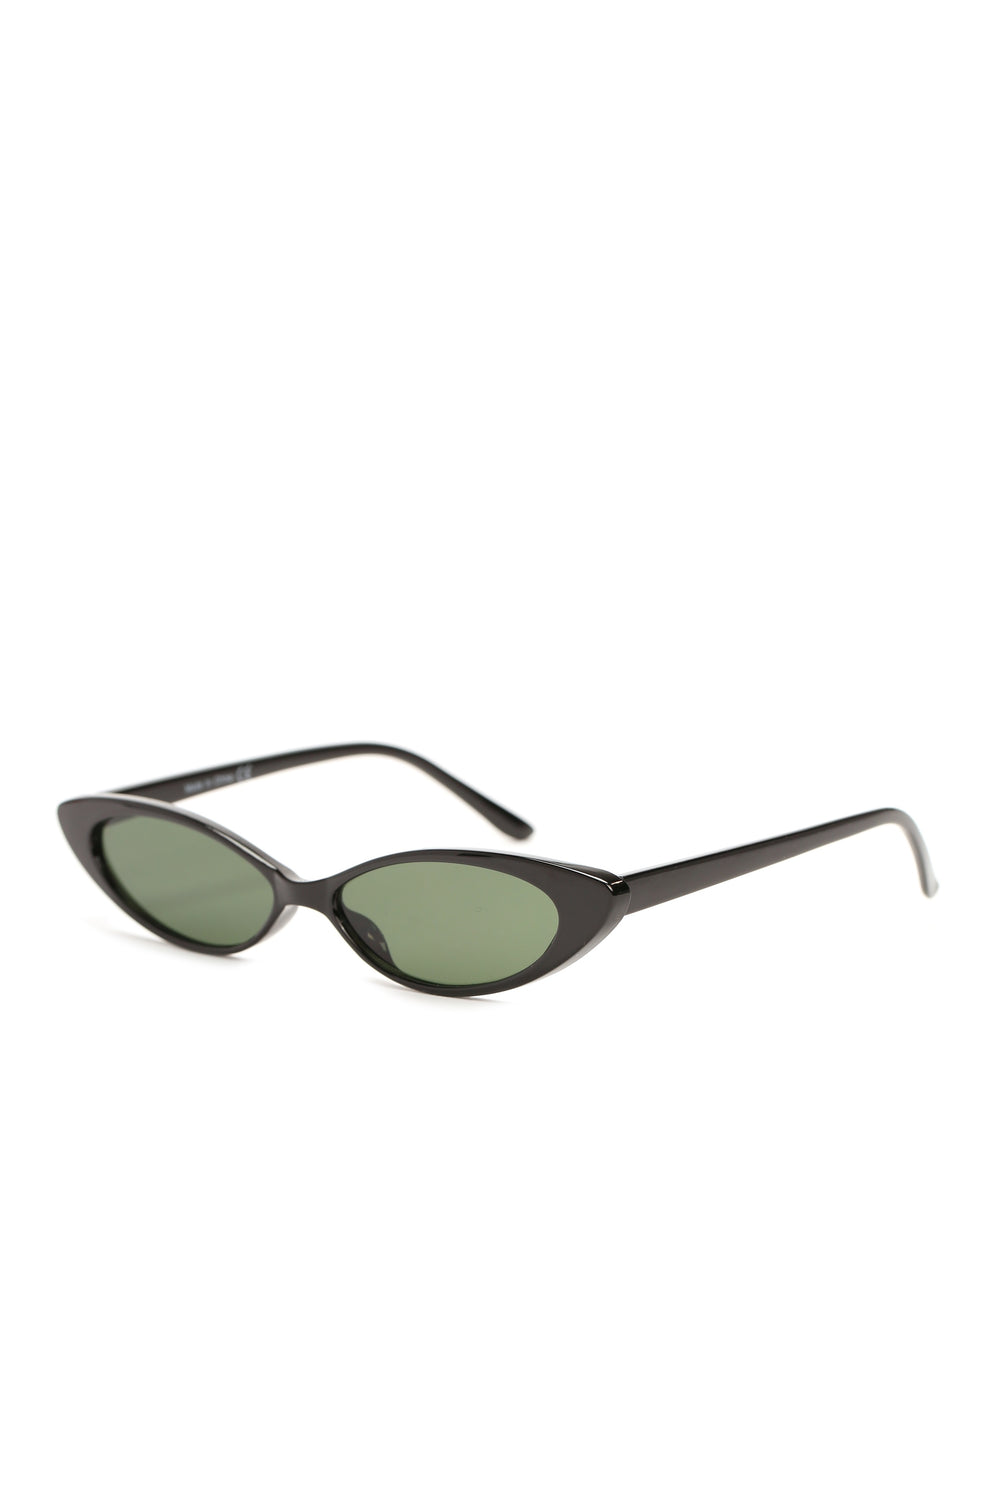 Growl Power Sunglasses - Black